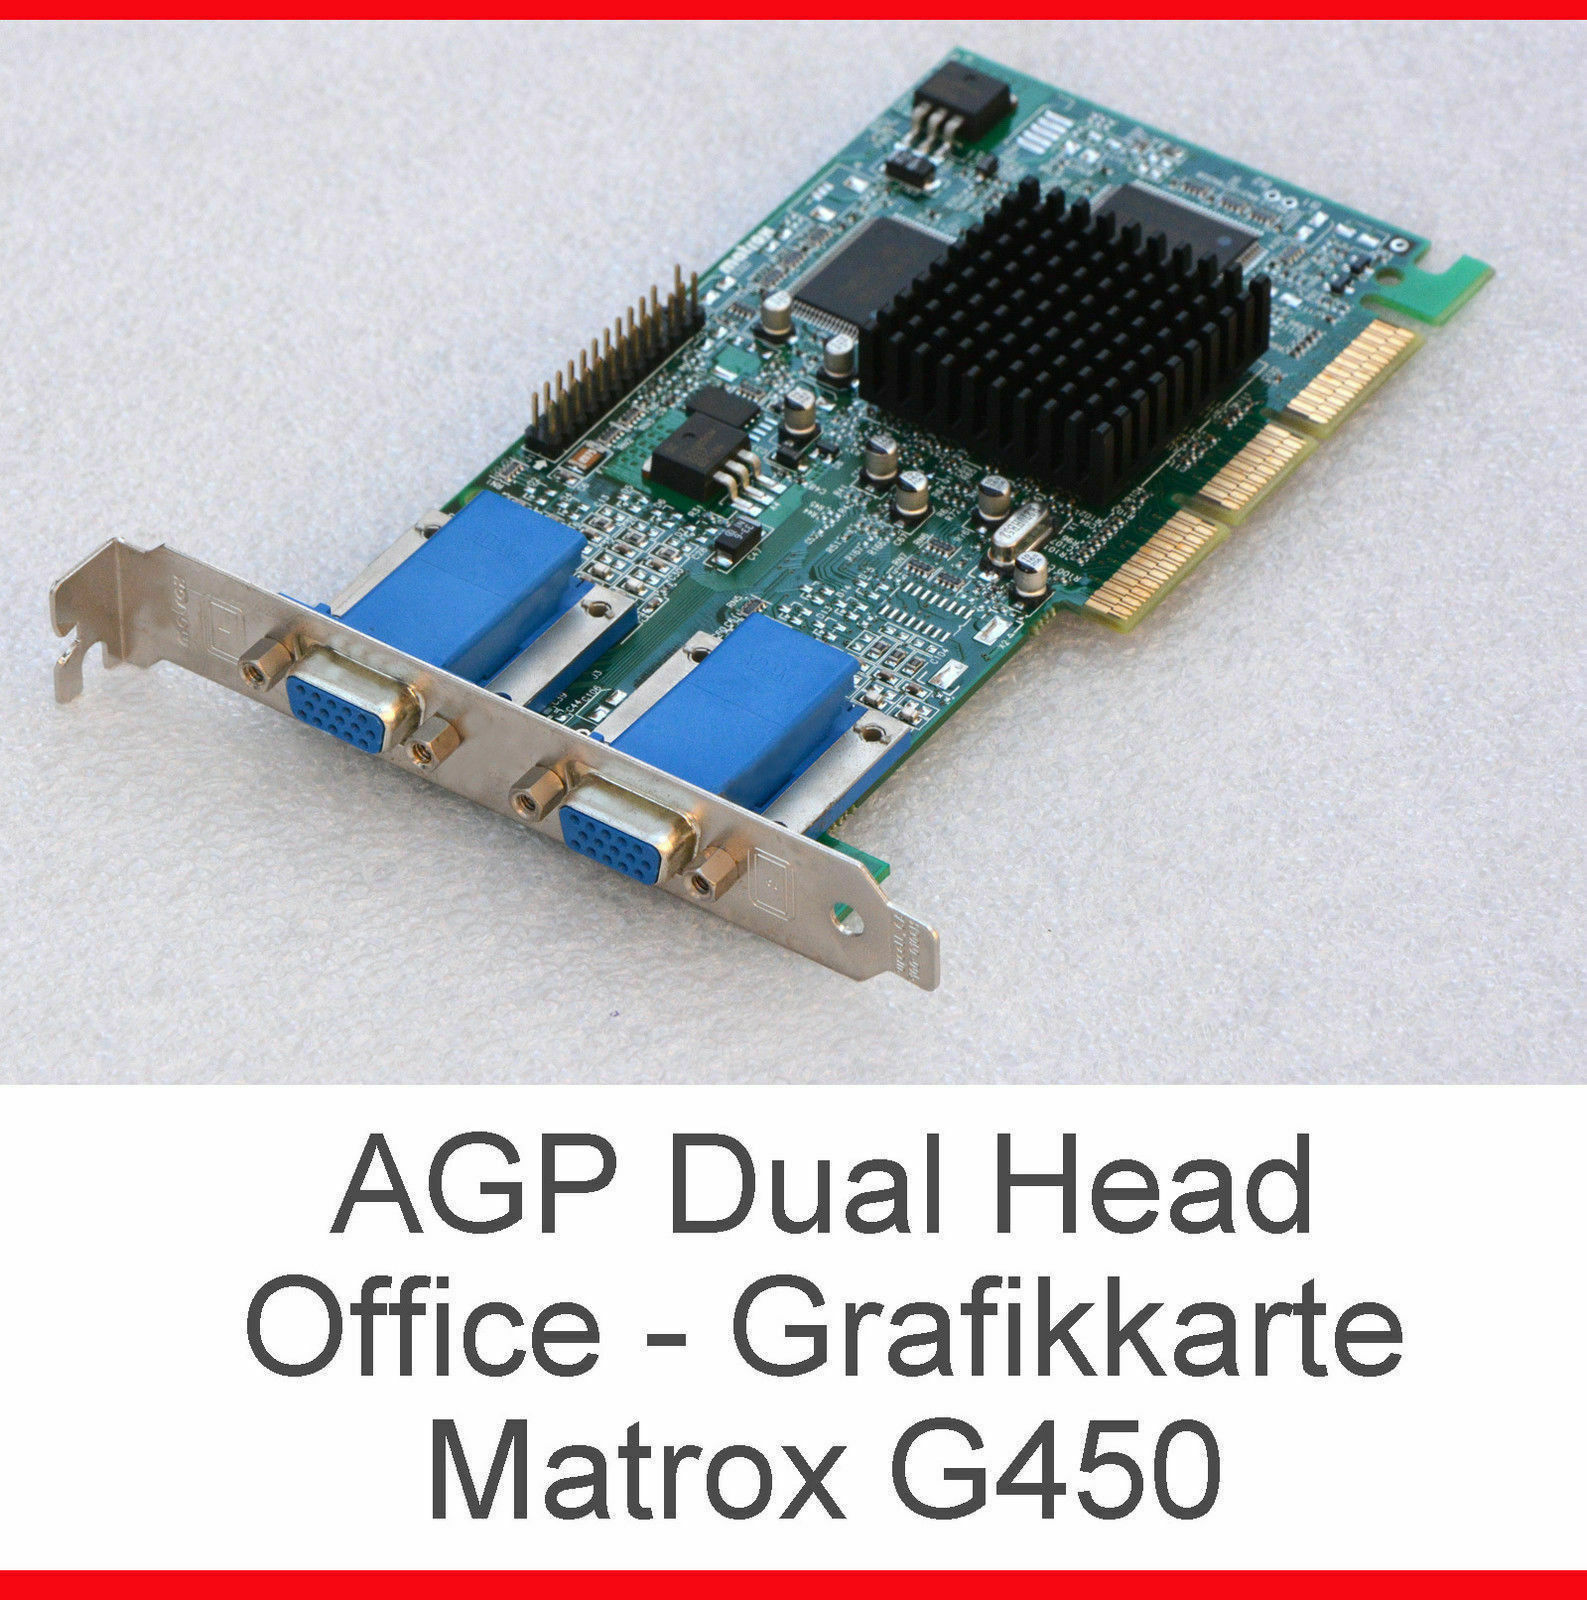 Passive Coolers Mga Dual Head 3D Graphic Card For 2 Displays Matrox G45 +32MB #